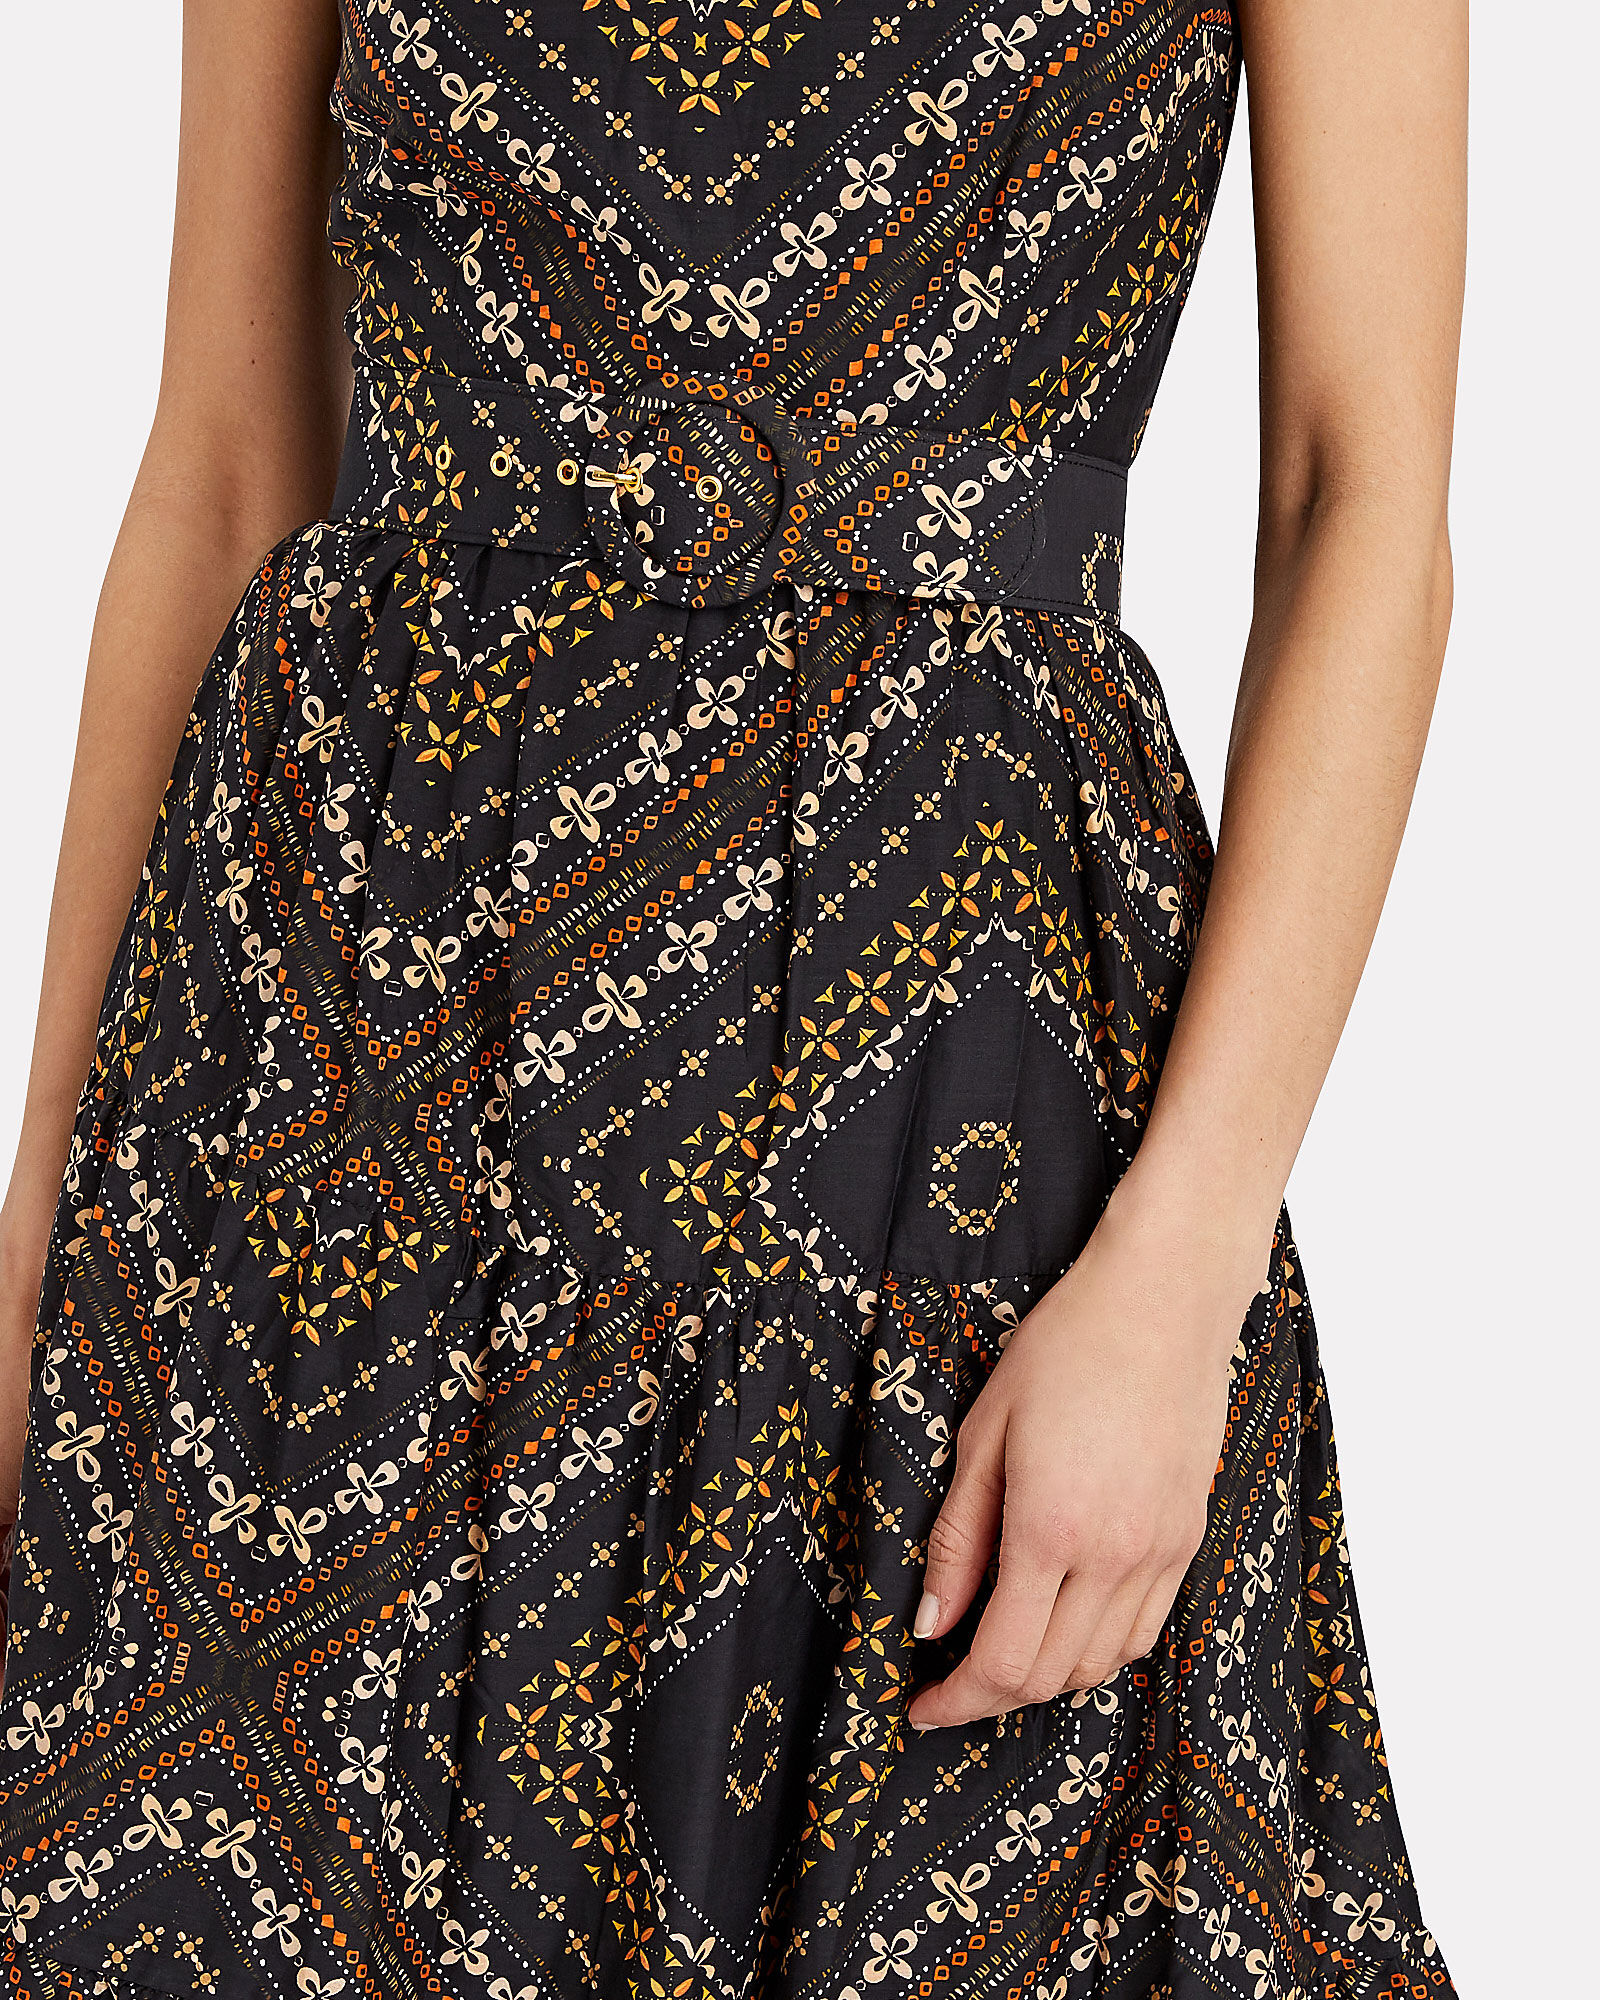 Kerala Silk-Cotton Maxi Dress, BROWN, hi-res